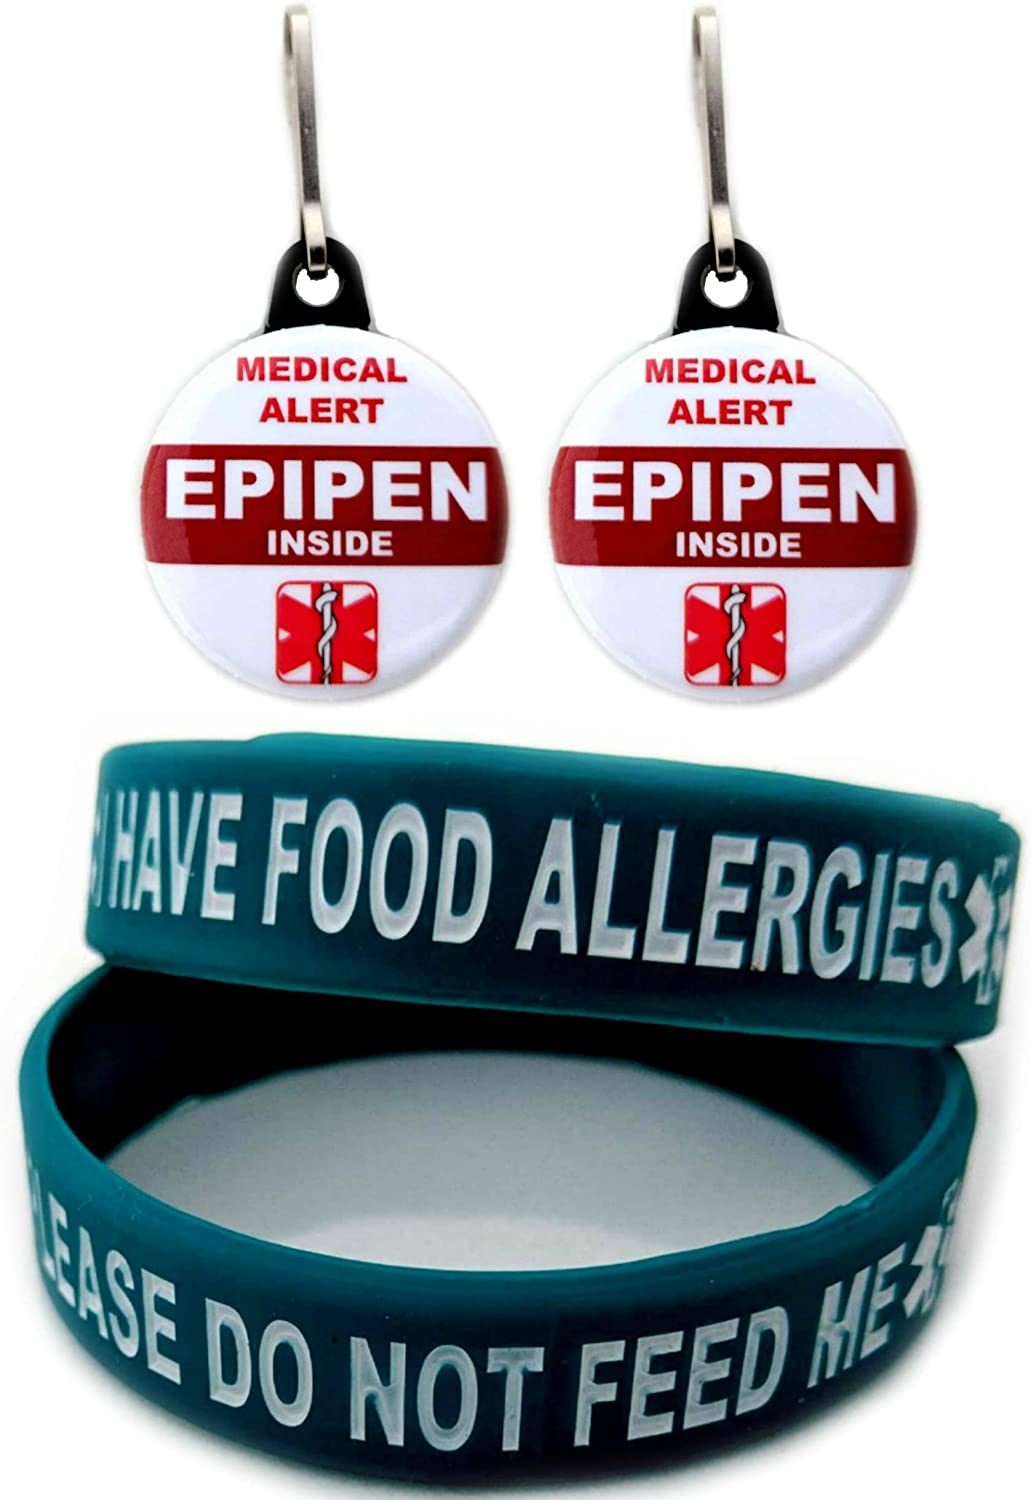 I Have Food Allergies Allergy Bracelet for Kids Teal 2pcs Toddler Size and Medical Alert Epipen Inside Bag Tag 2pcs